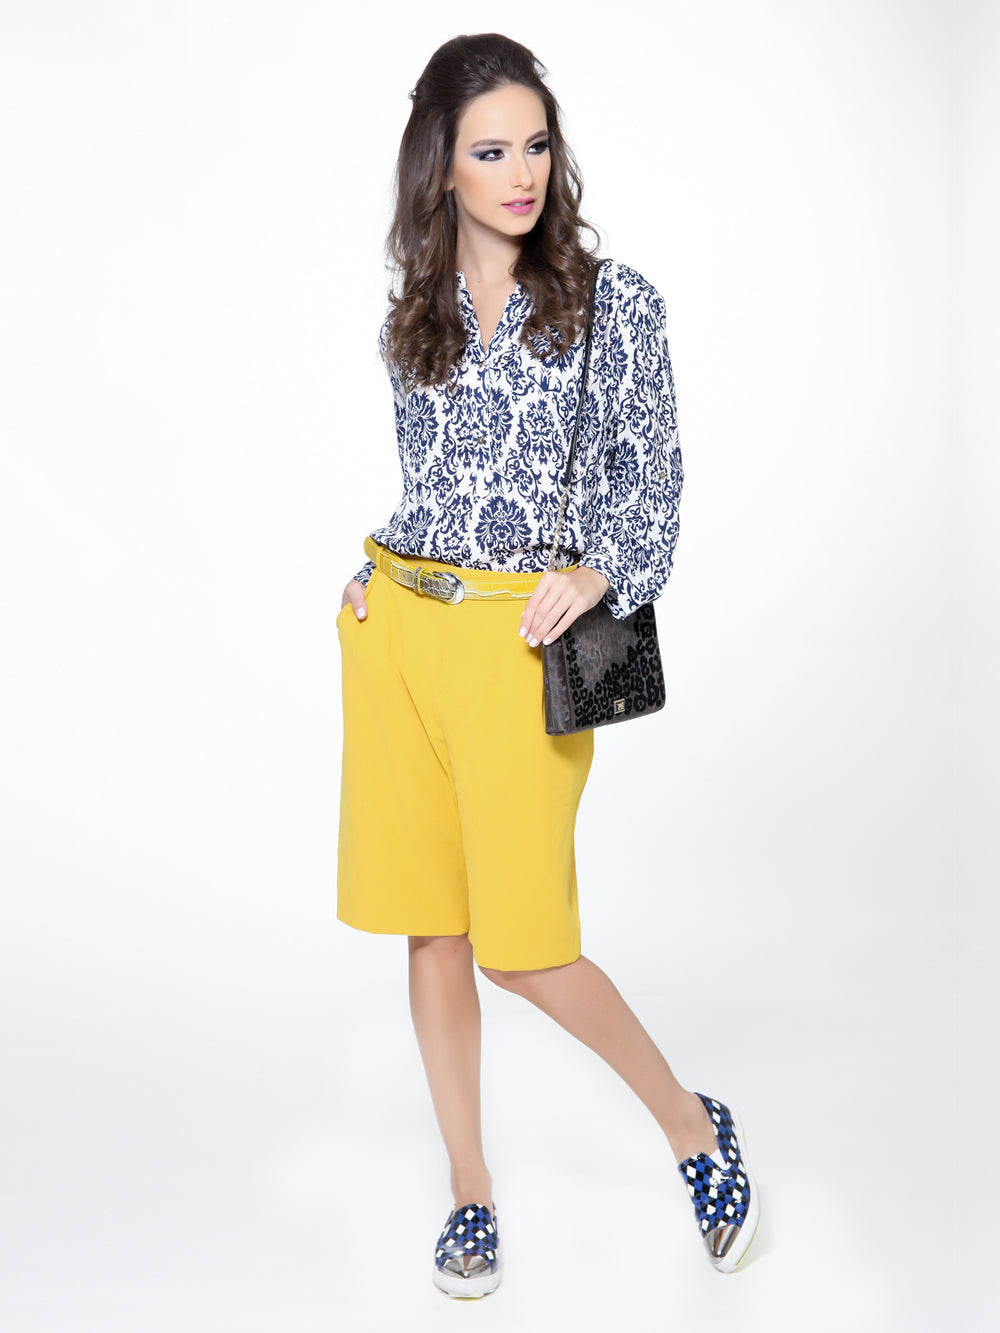 Navy Floral Print Top, CJF - elilhaam.com